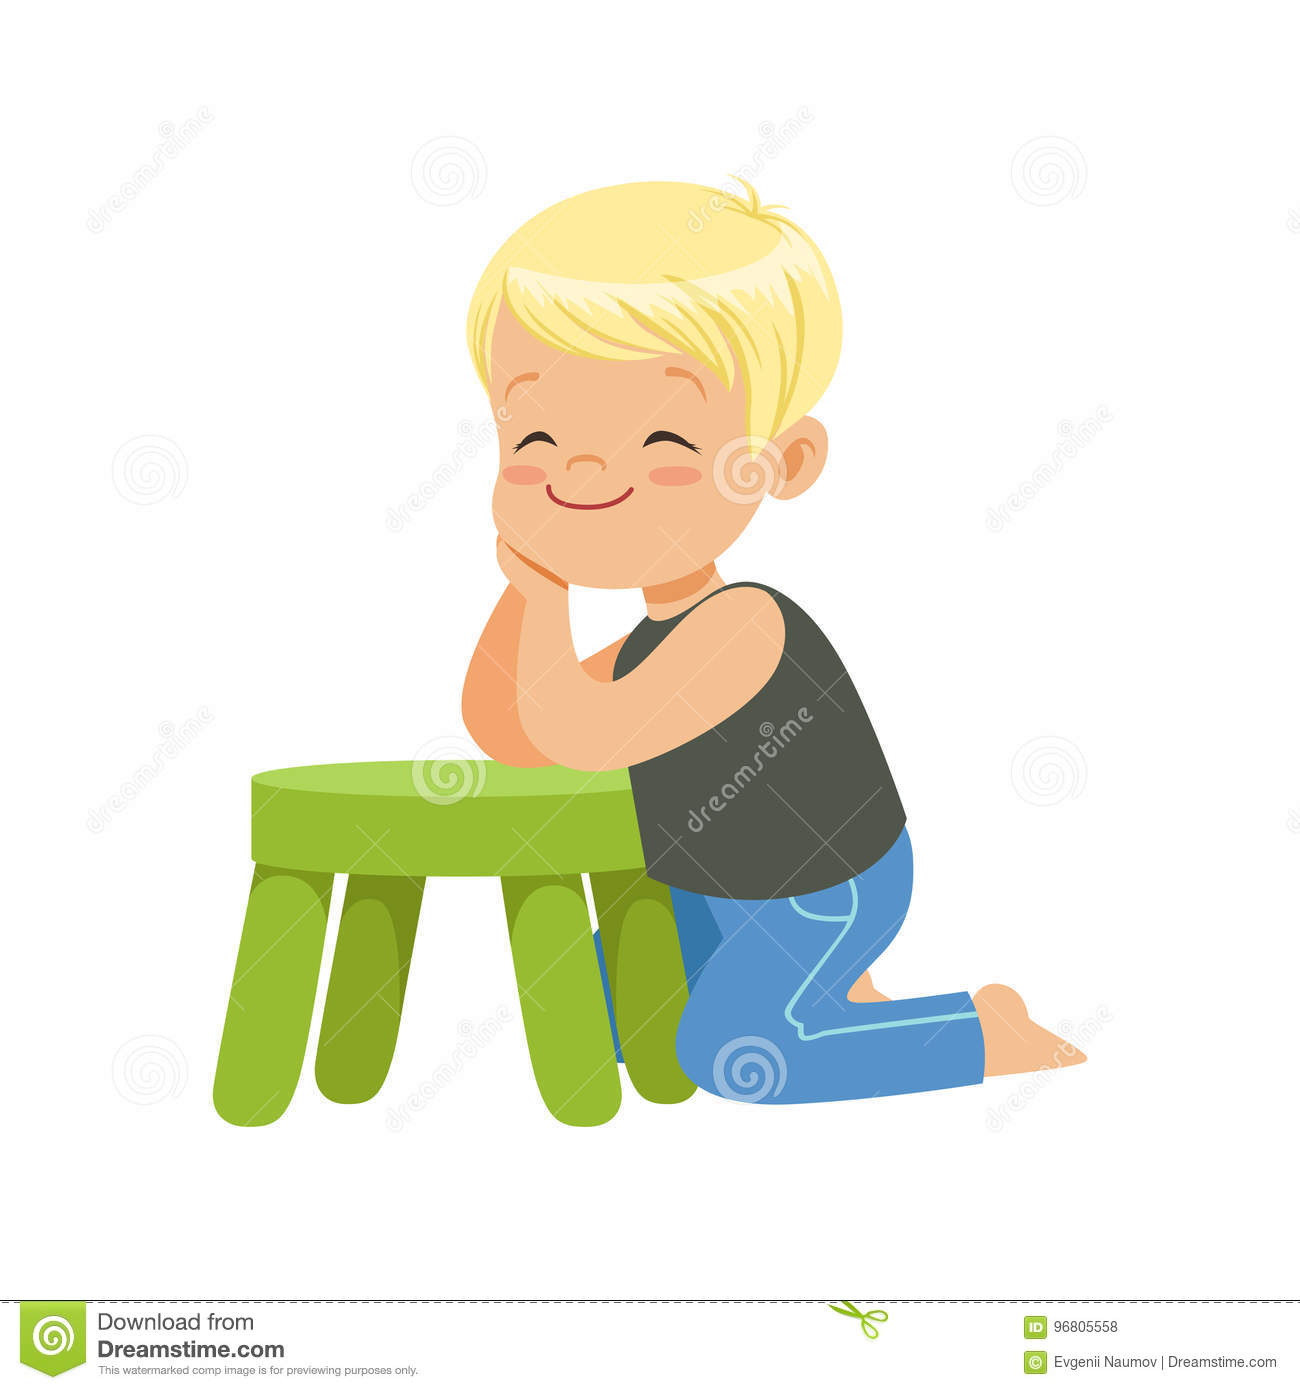 Incredible Sweet Smiling Little Boy Sitting On The Floor Leaning On A Gmtry Best Dining Table And Chair Ideas Images Gmtryco